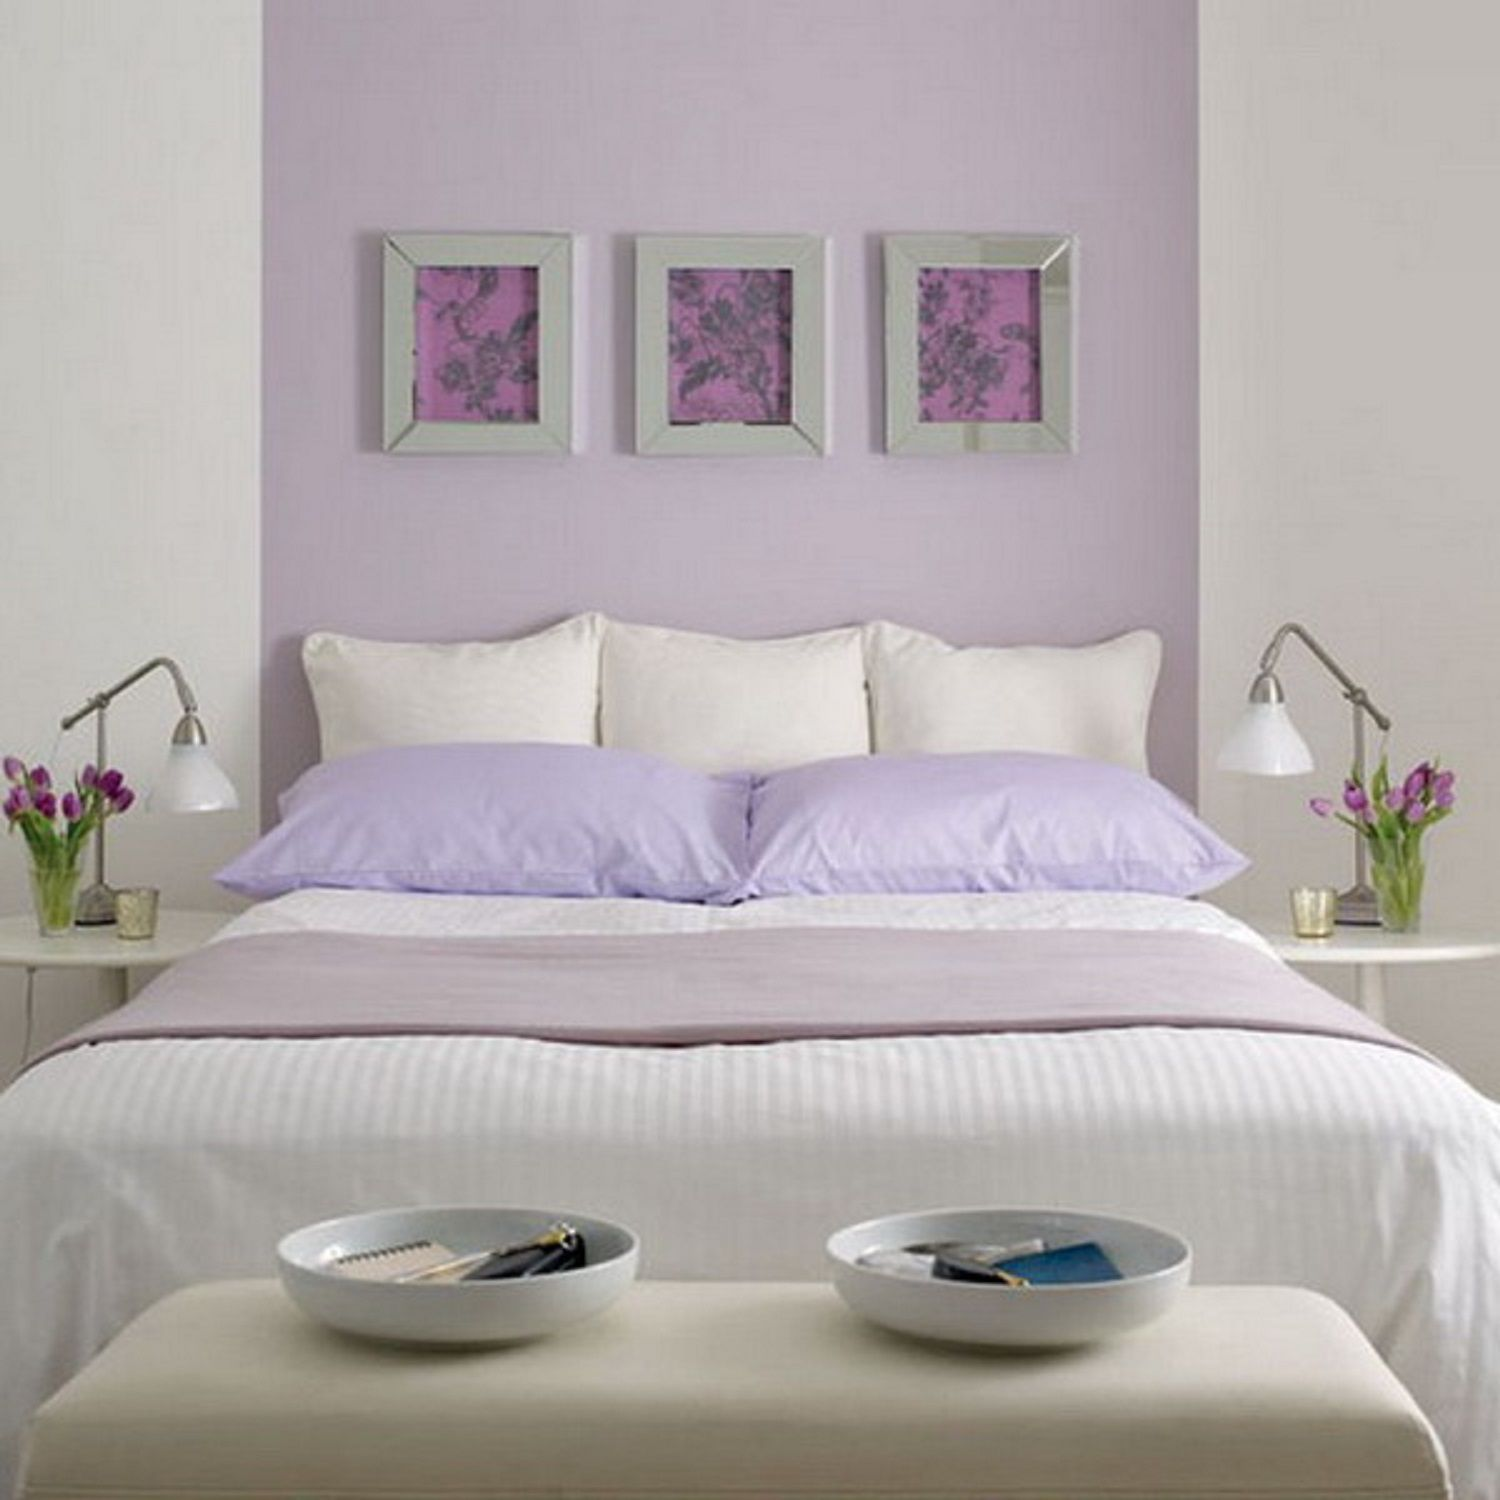 Tips and s for Decorating the Bedroom with Lavender